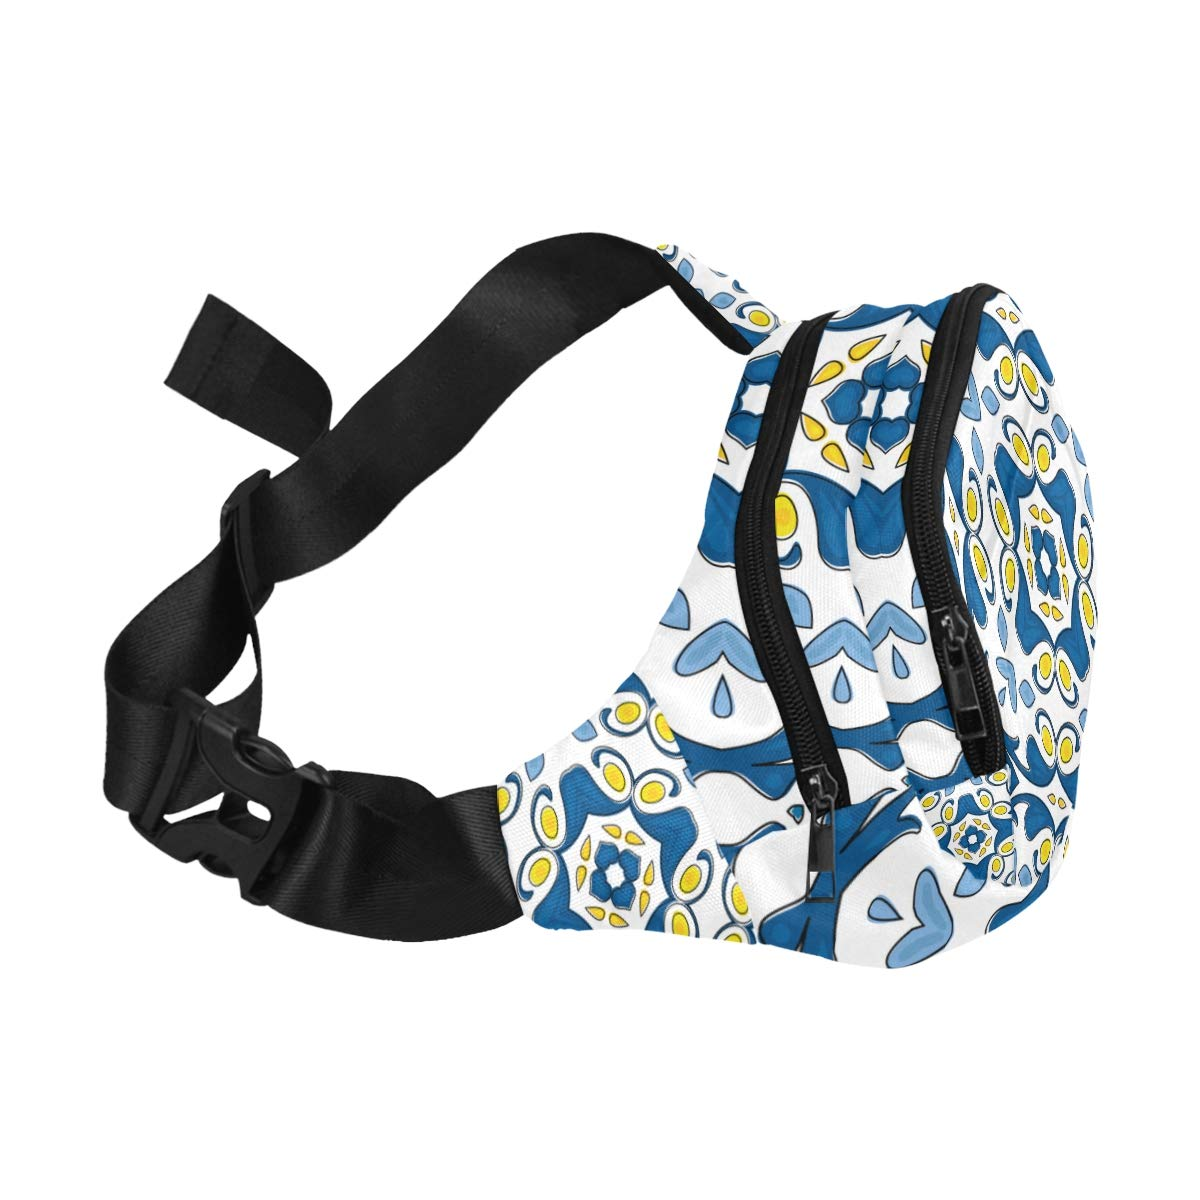 Yellow And Blue Design Print Fenny Packs Waist Bags Adjustable Belt Waterproof Nylon Travel Running Sport Vacation Party For Men Women Boys Girls Kids